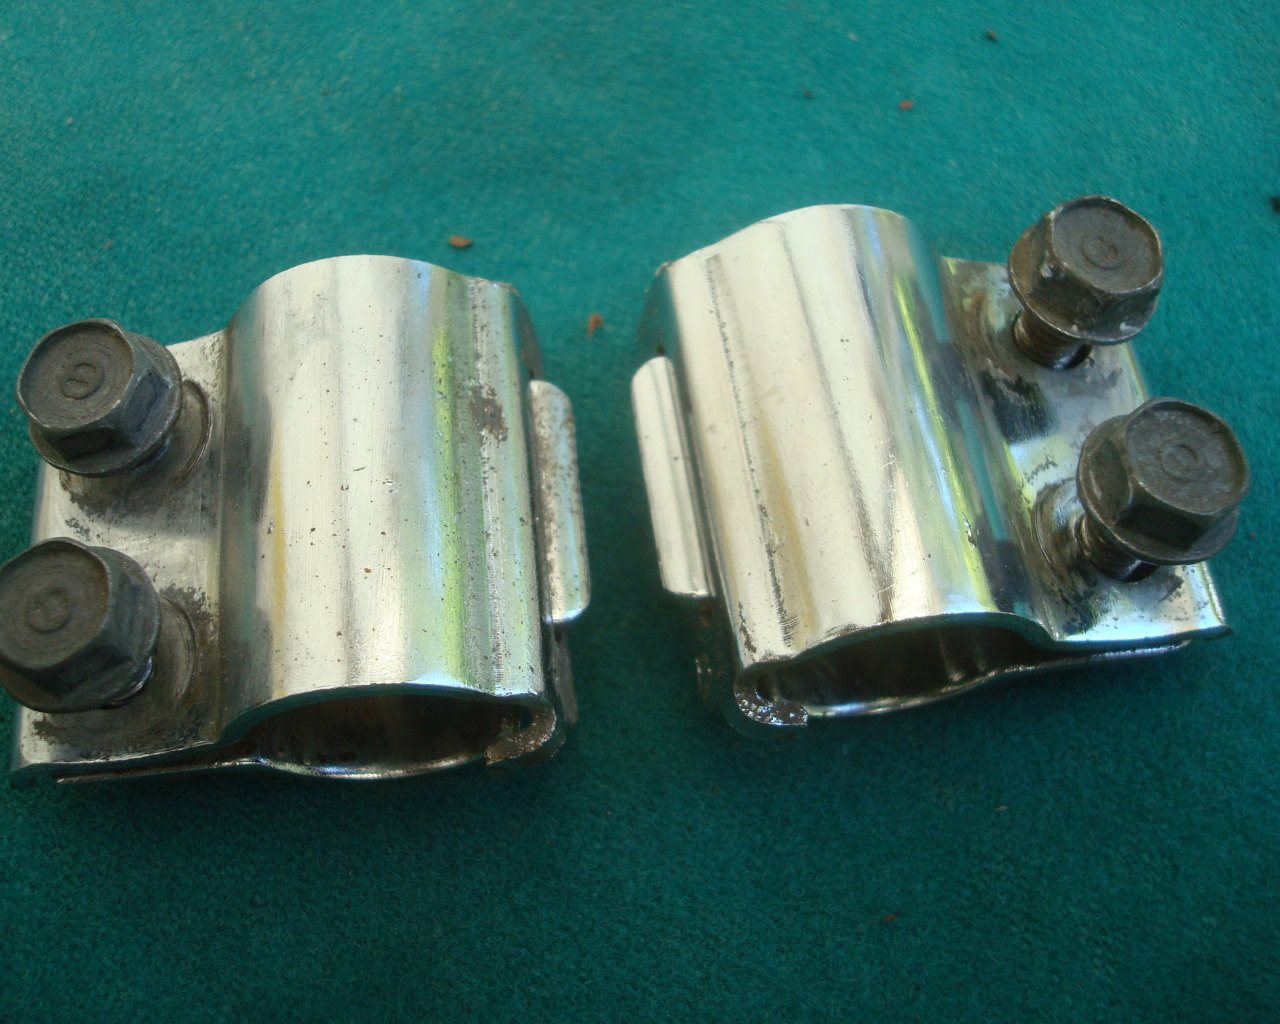 GL1100 1200 80 to 87 SW Pipe Clamps saddlebag mount joiners